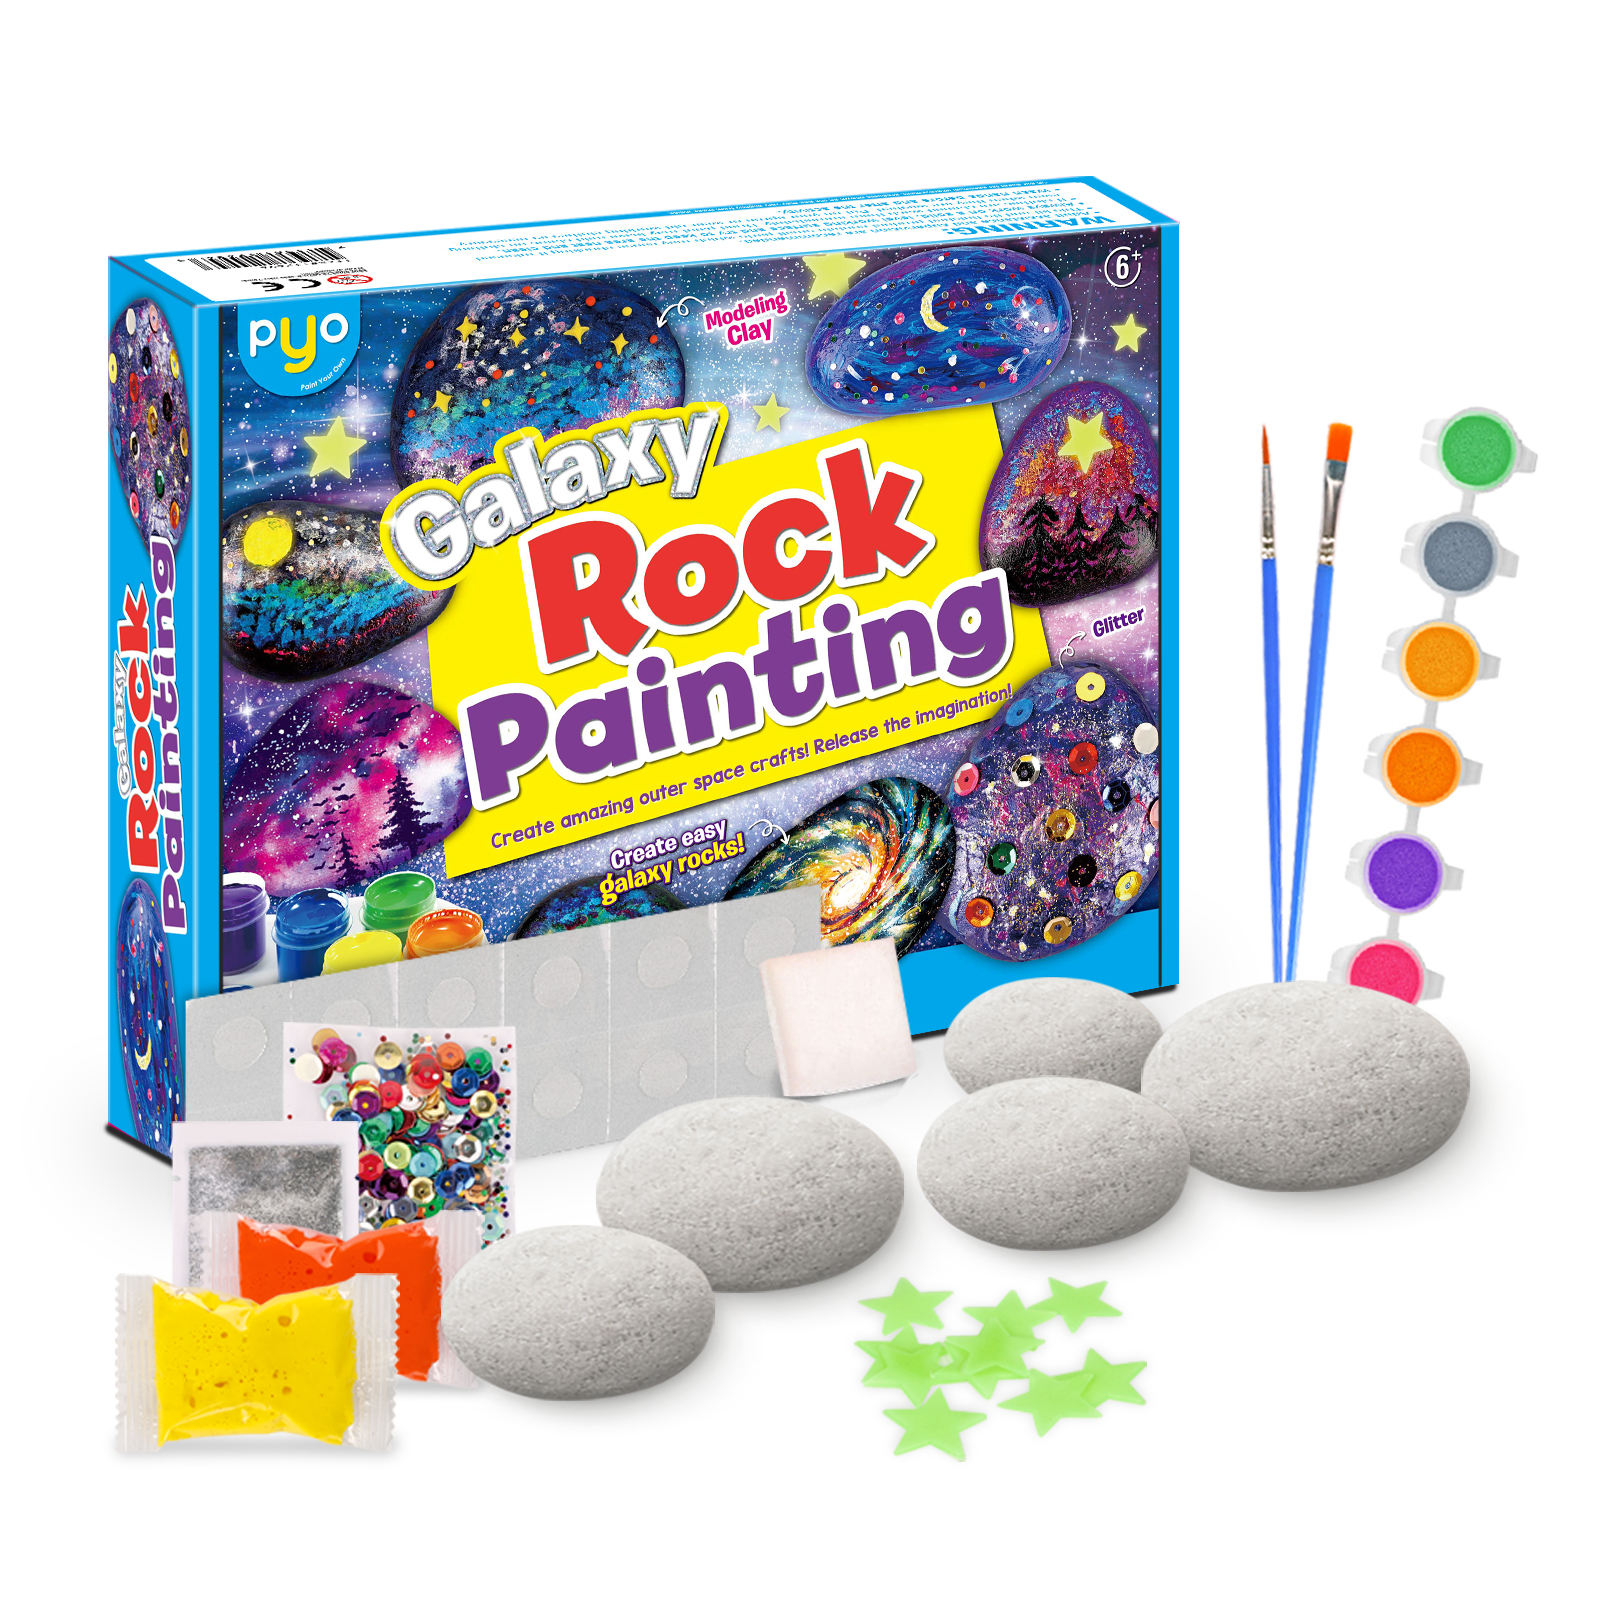 2020 Amazon hot sell rock painting kit Children Diy Arts And Crafts Sets For Kids Rock Painting Kits Other Toys for kids